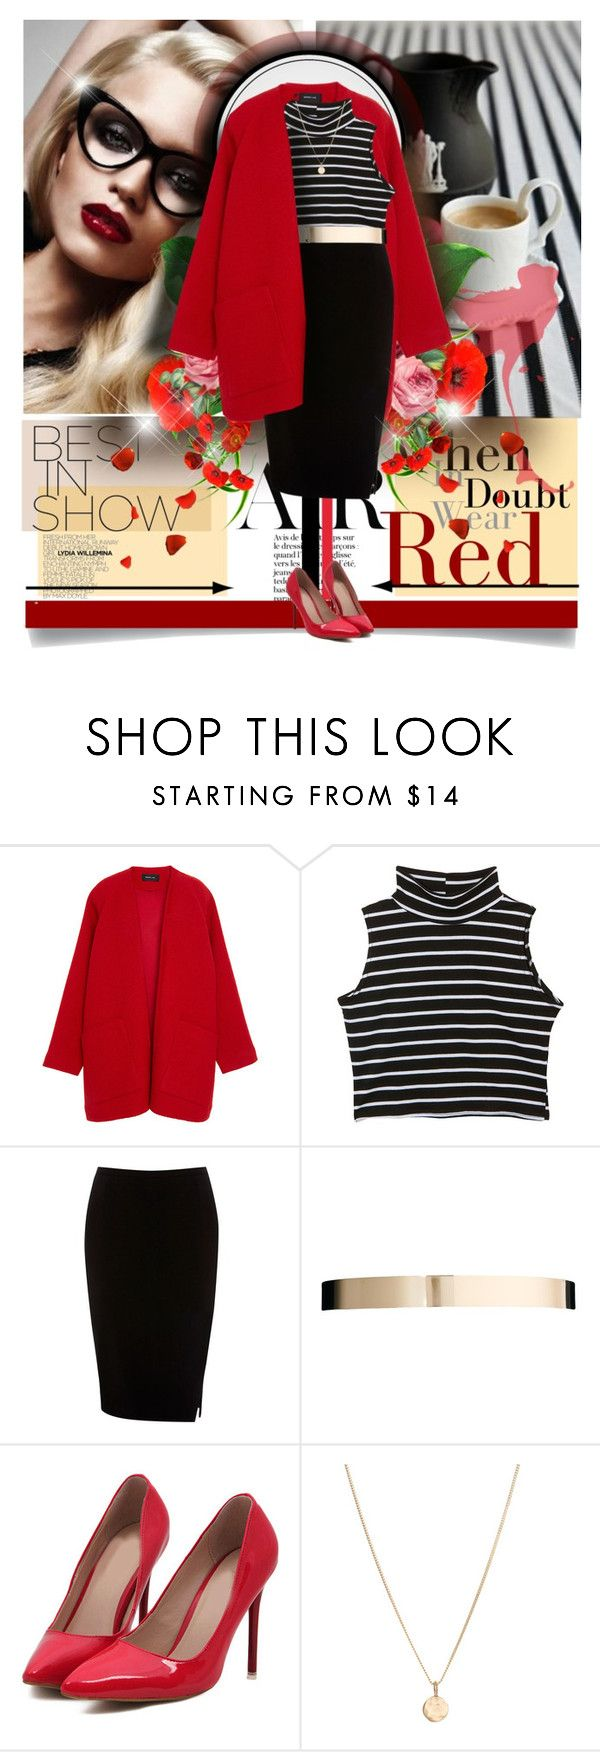 """Sophisticated in Red"" by elizamonel ❤ liked on Polyvore featuring Derek Lam, Oasis, ASOS and Laura Lee"